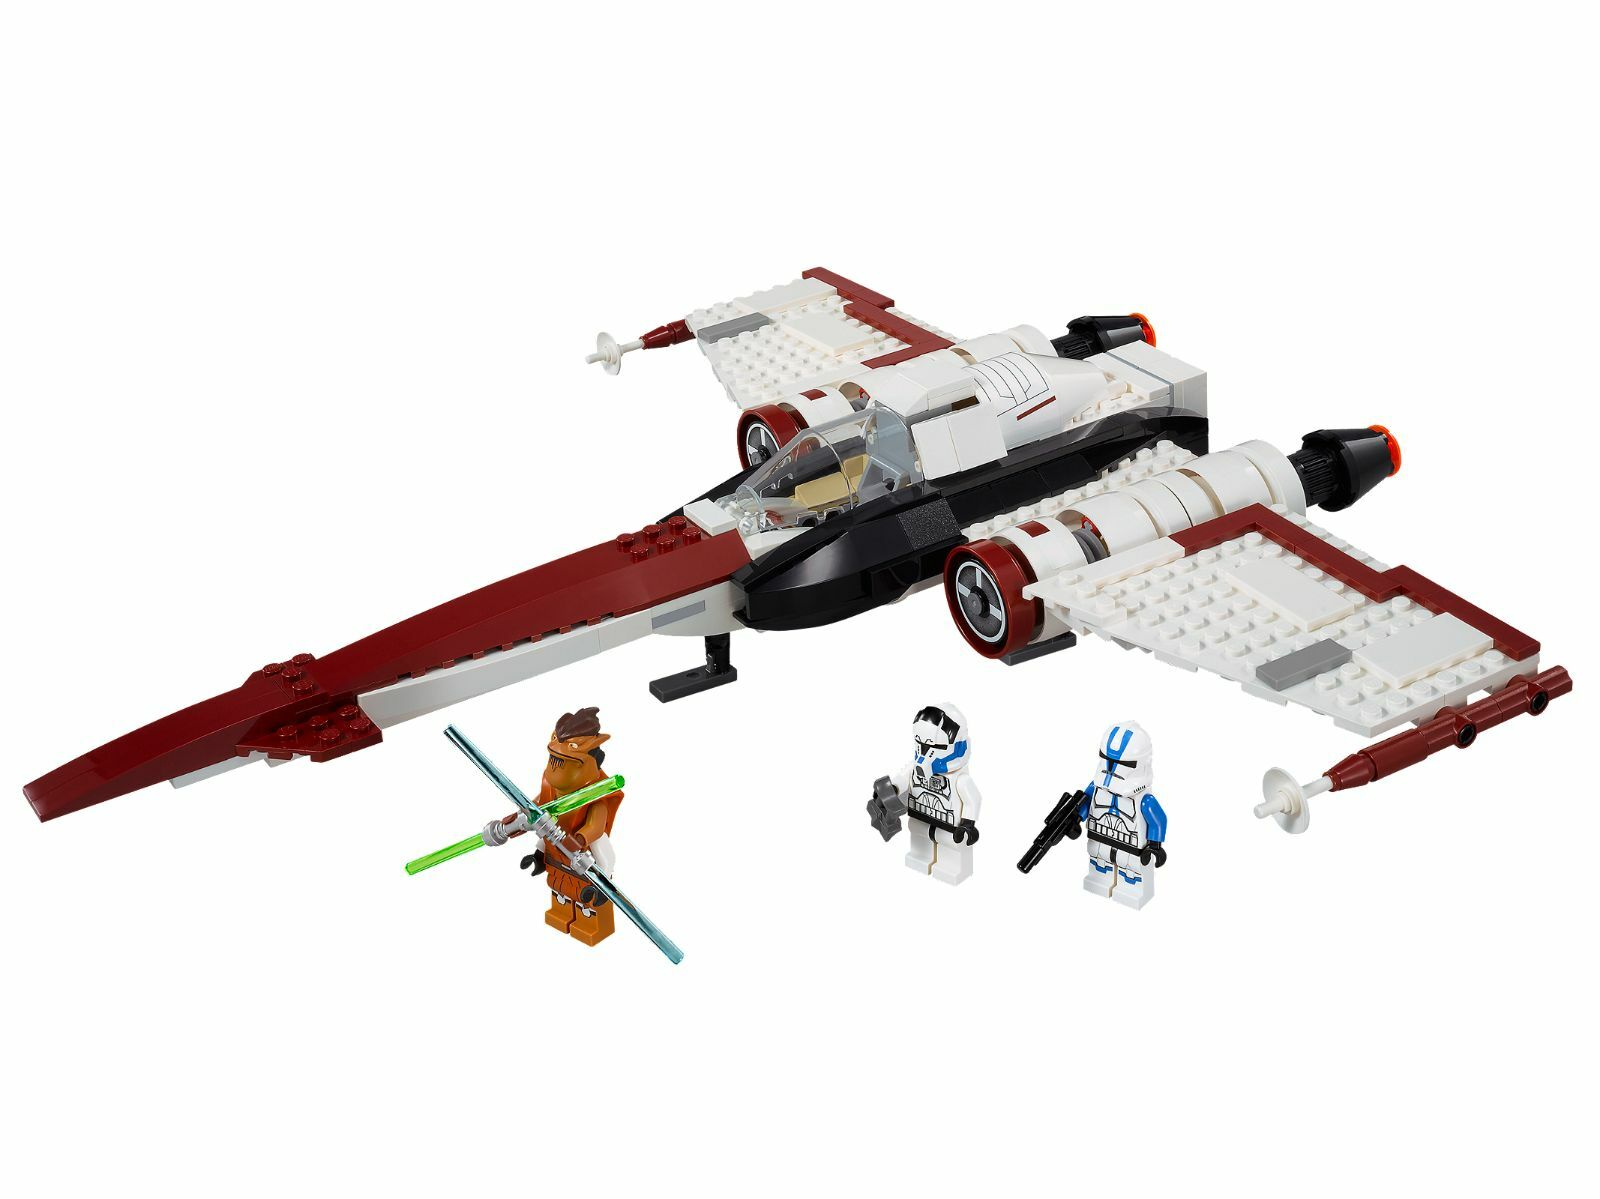 Lego 75004 Star Wars Z-95 Headhunter complet 100 % + notice + boite box CNB43